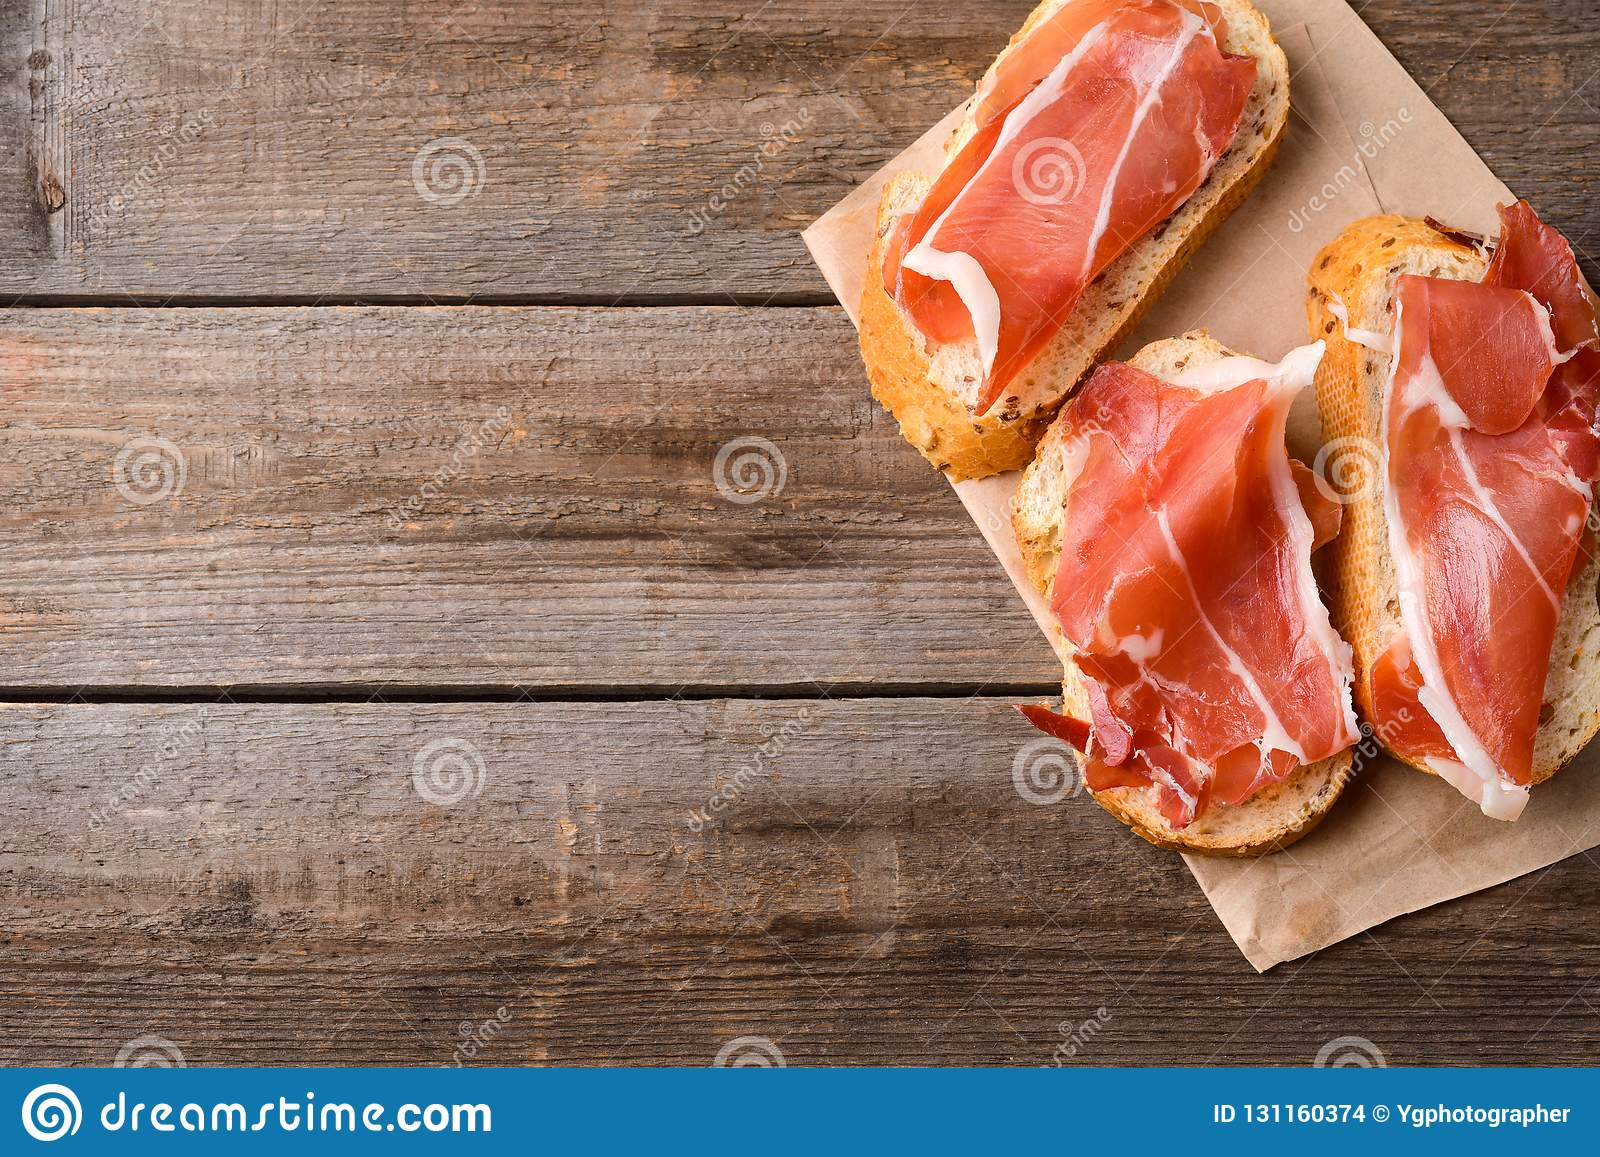 Bread and slices of meat